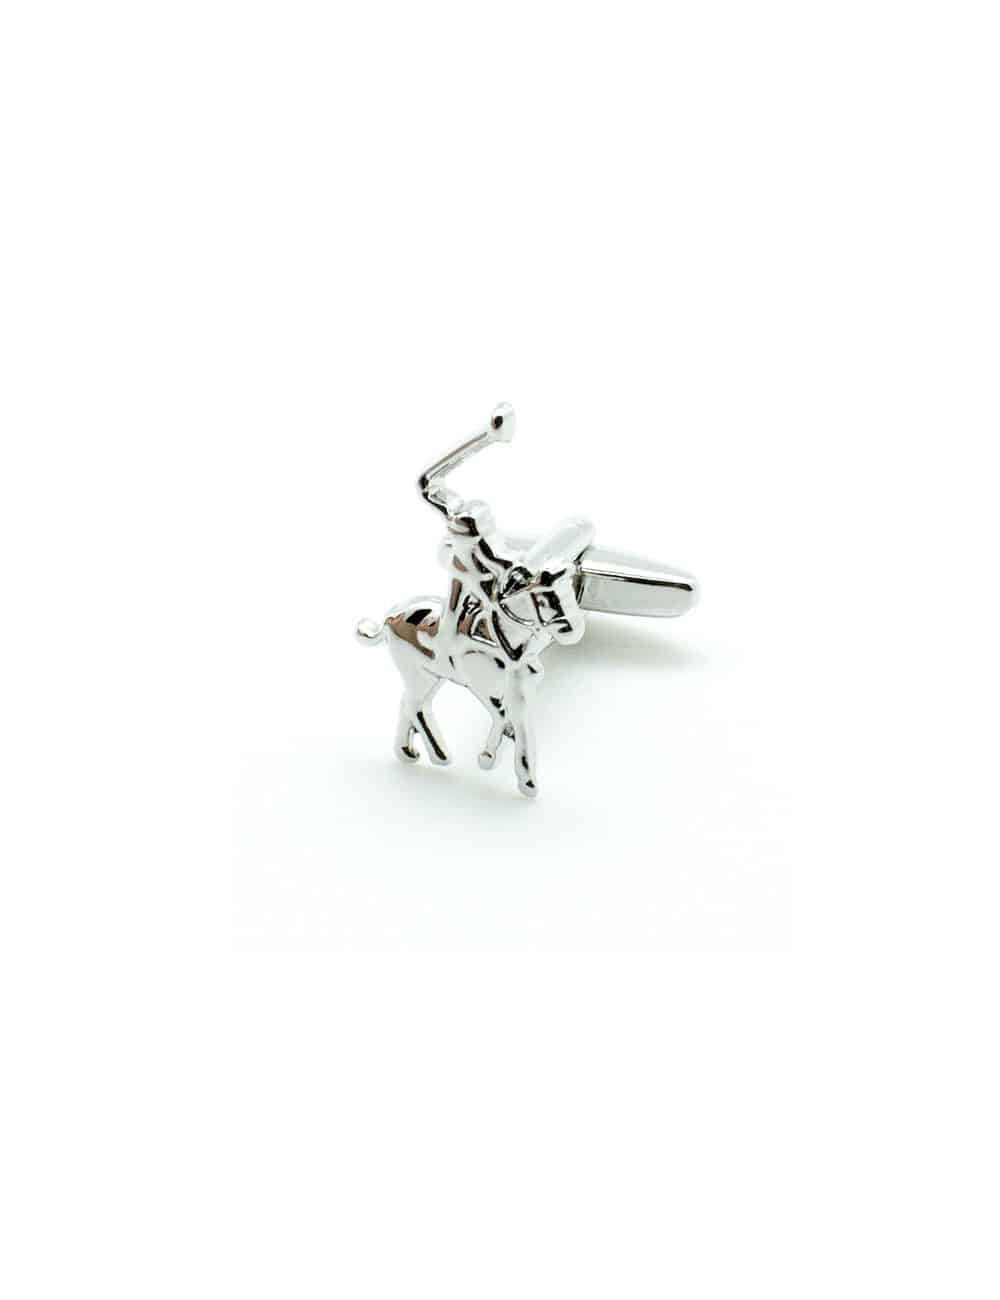 Silver Equestrian Horse Back Riding with Whip Cufflink C256NS-015